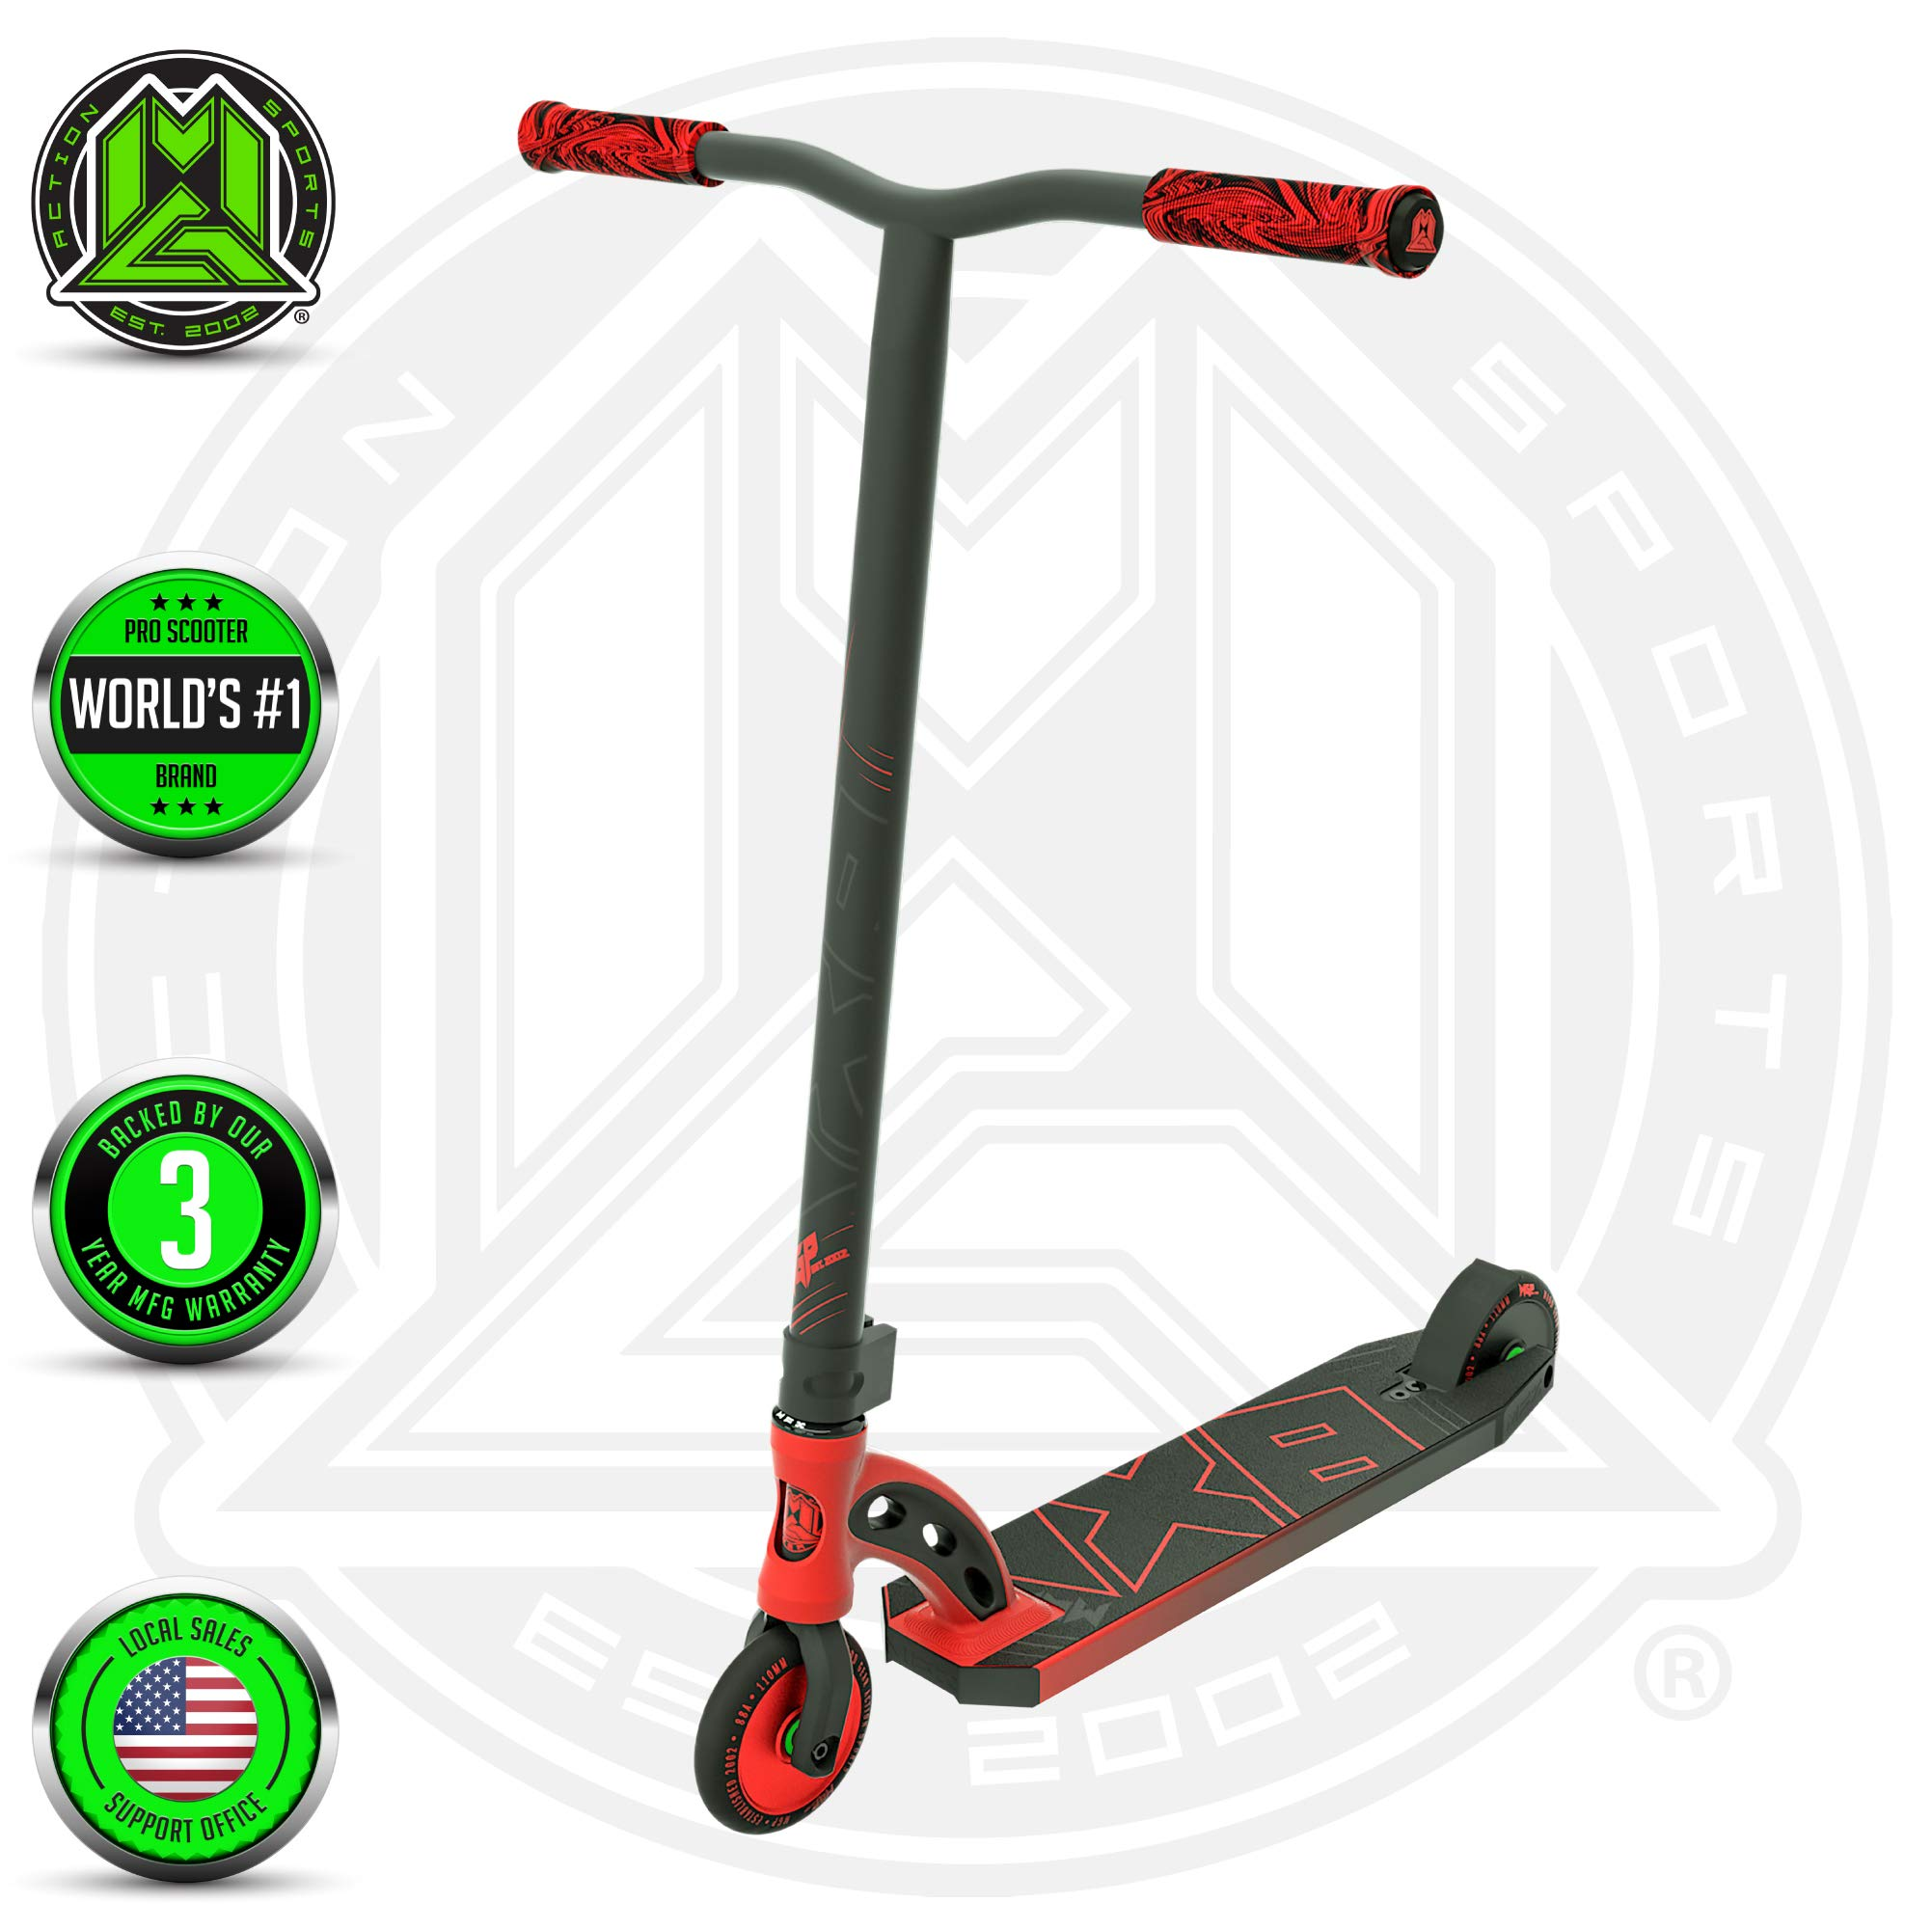 Madd Gear MGP VX8 Freestyle Pro Scooter - Red/Black